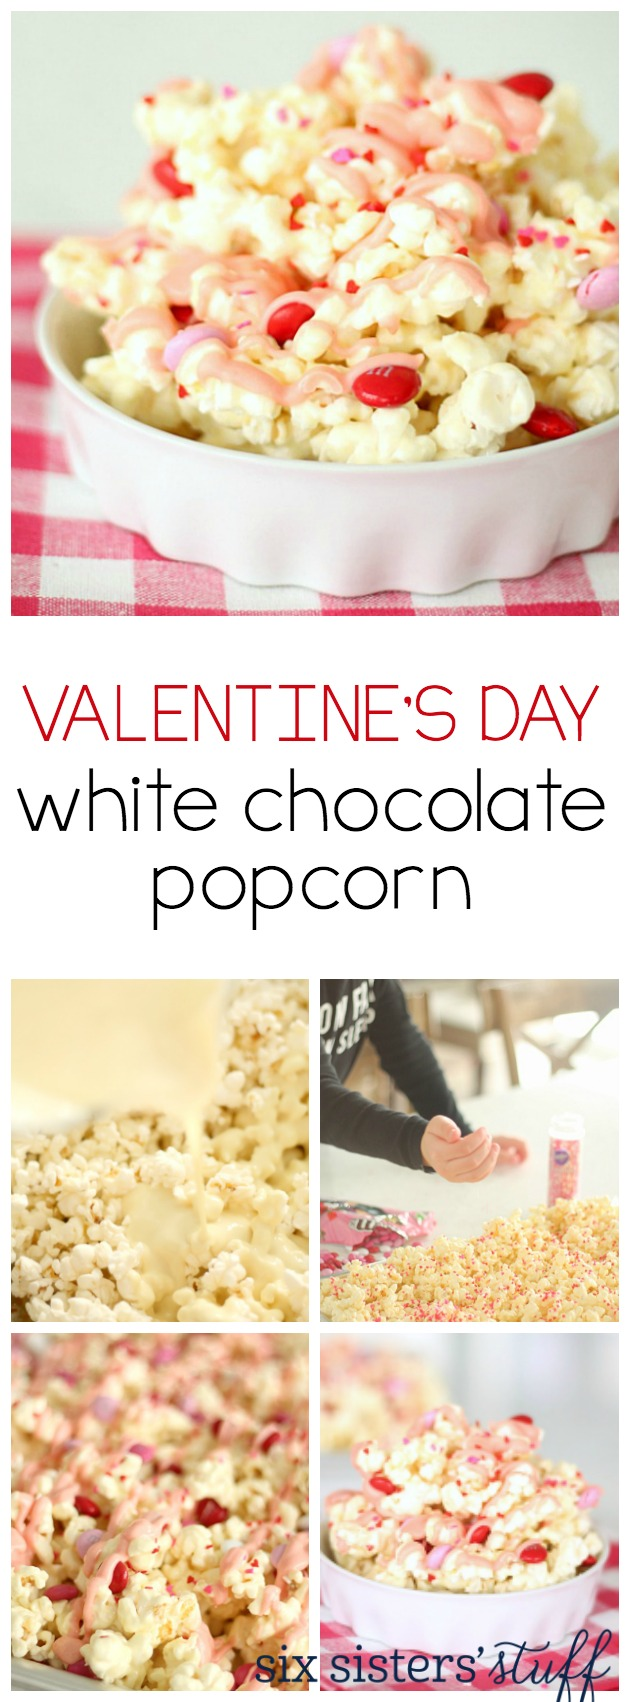 Easy Valentine's Day White Chocolate Popcorn from SixSistersStuff.com